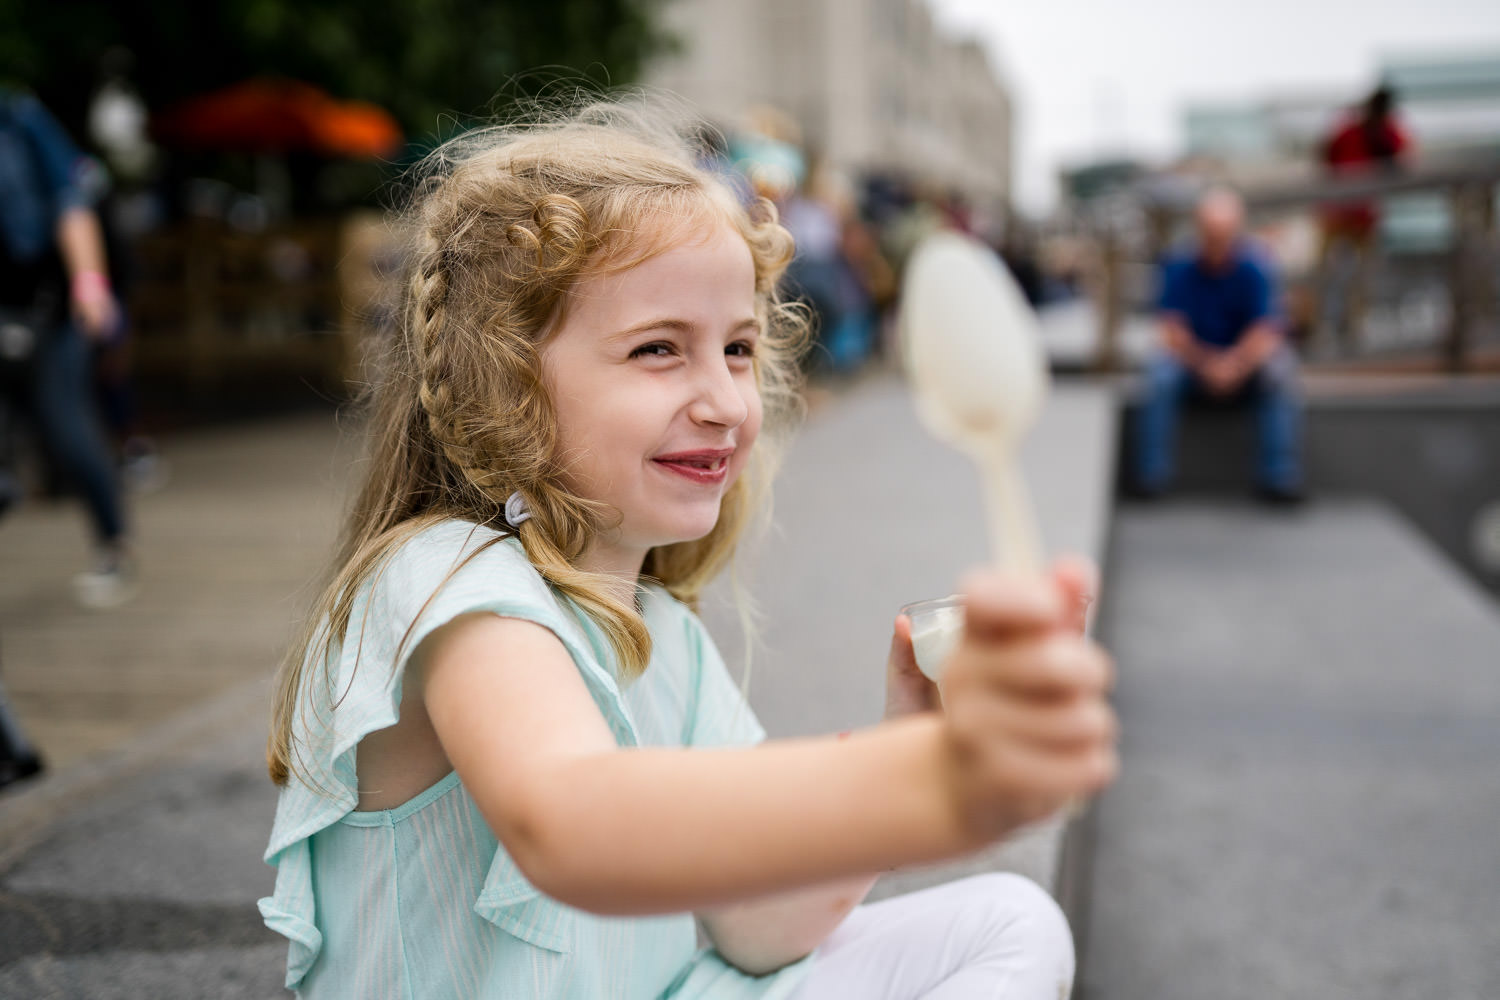 A little girl smiles while eating ice cream.